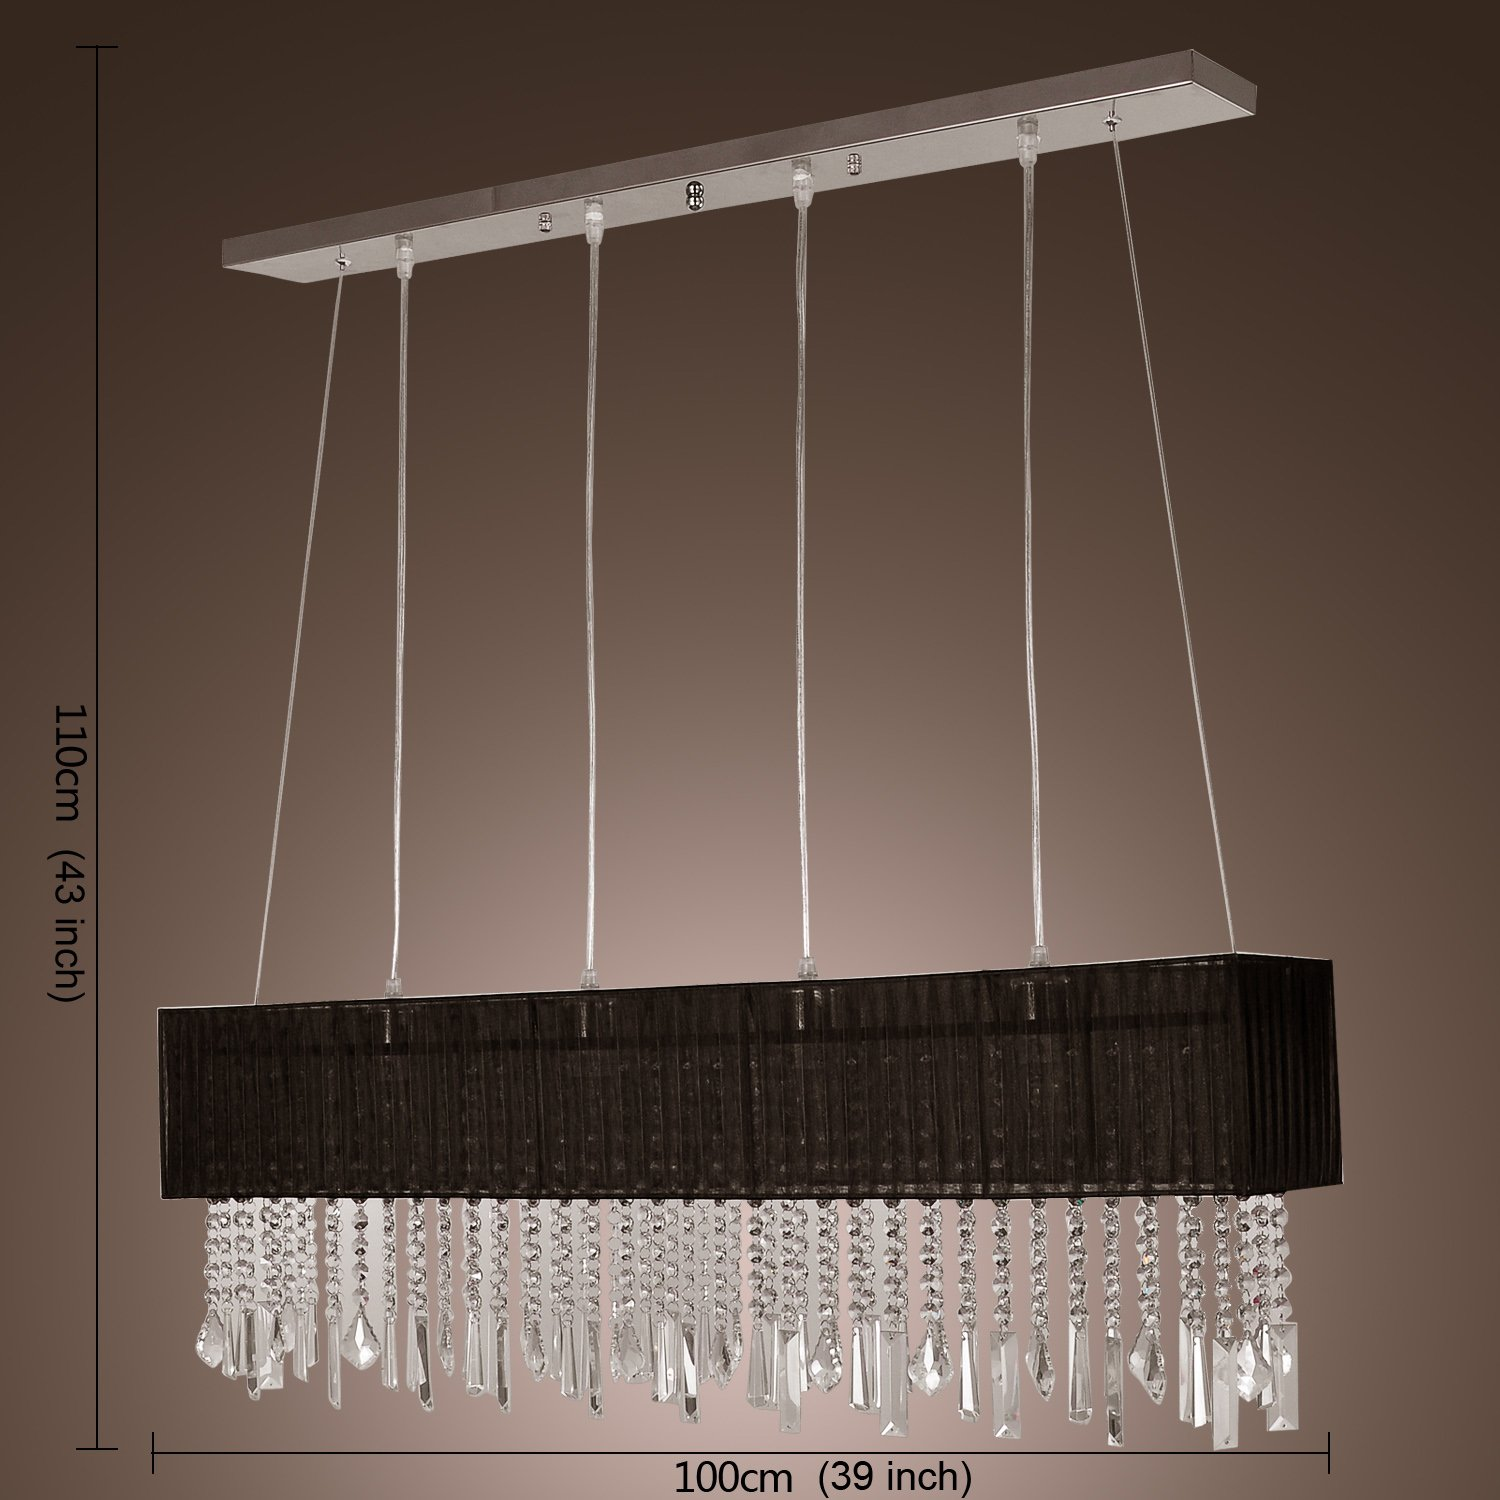 Modern Stylish Pendant Hanging Drop Light With 4 Lights Chain Cord Adjustable For Living Room Dining Hallway And Entery